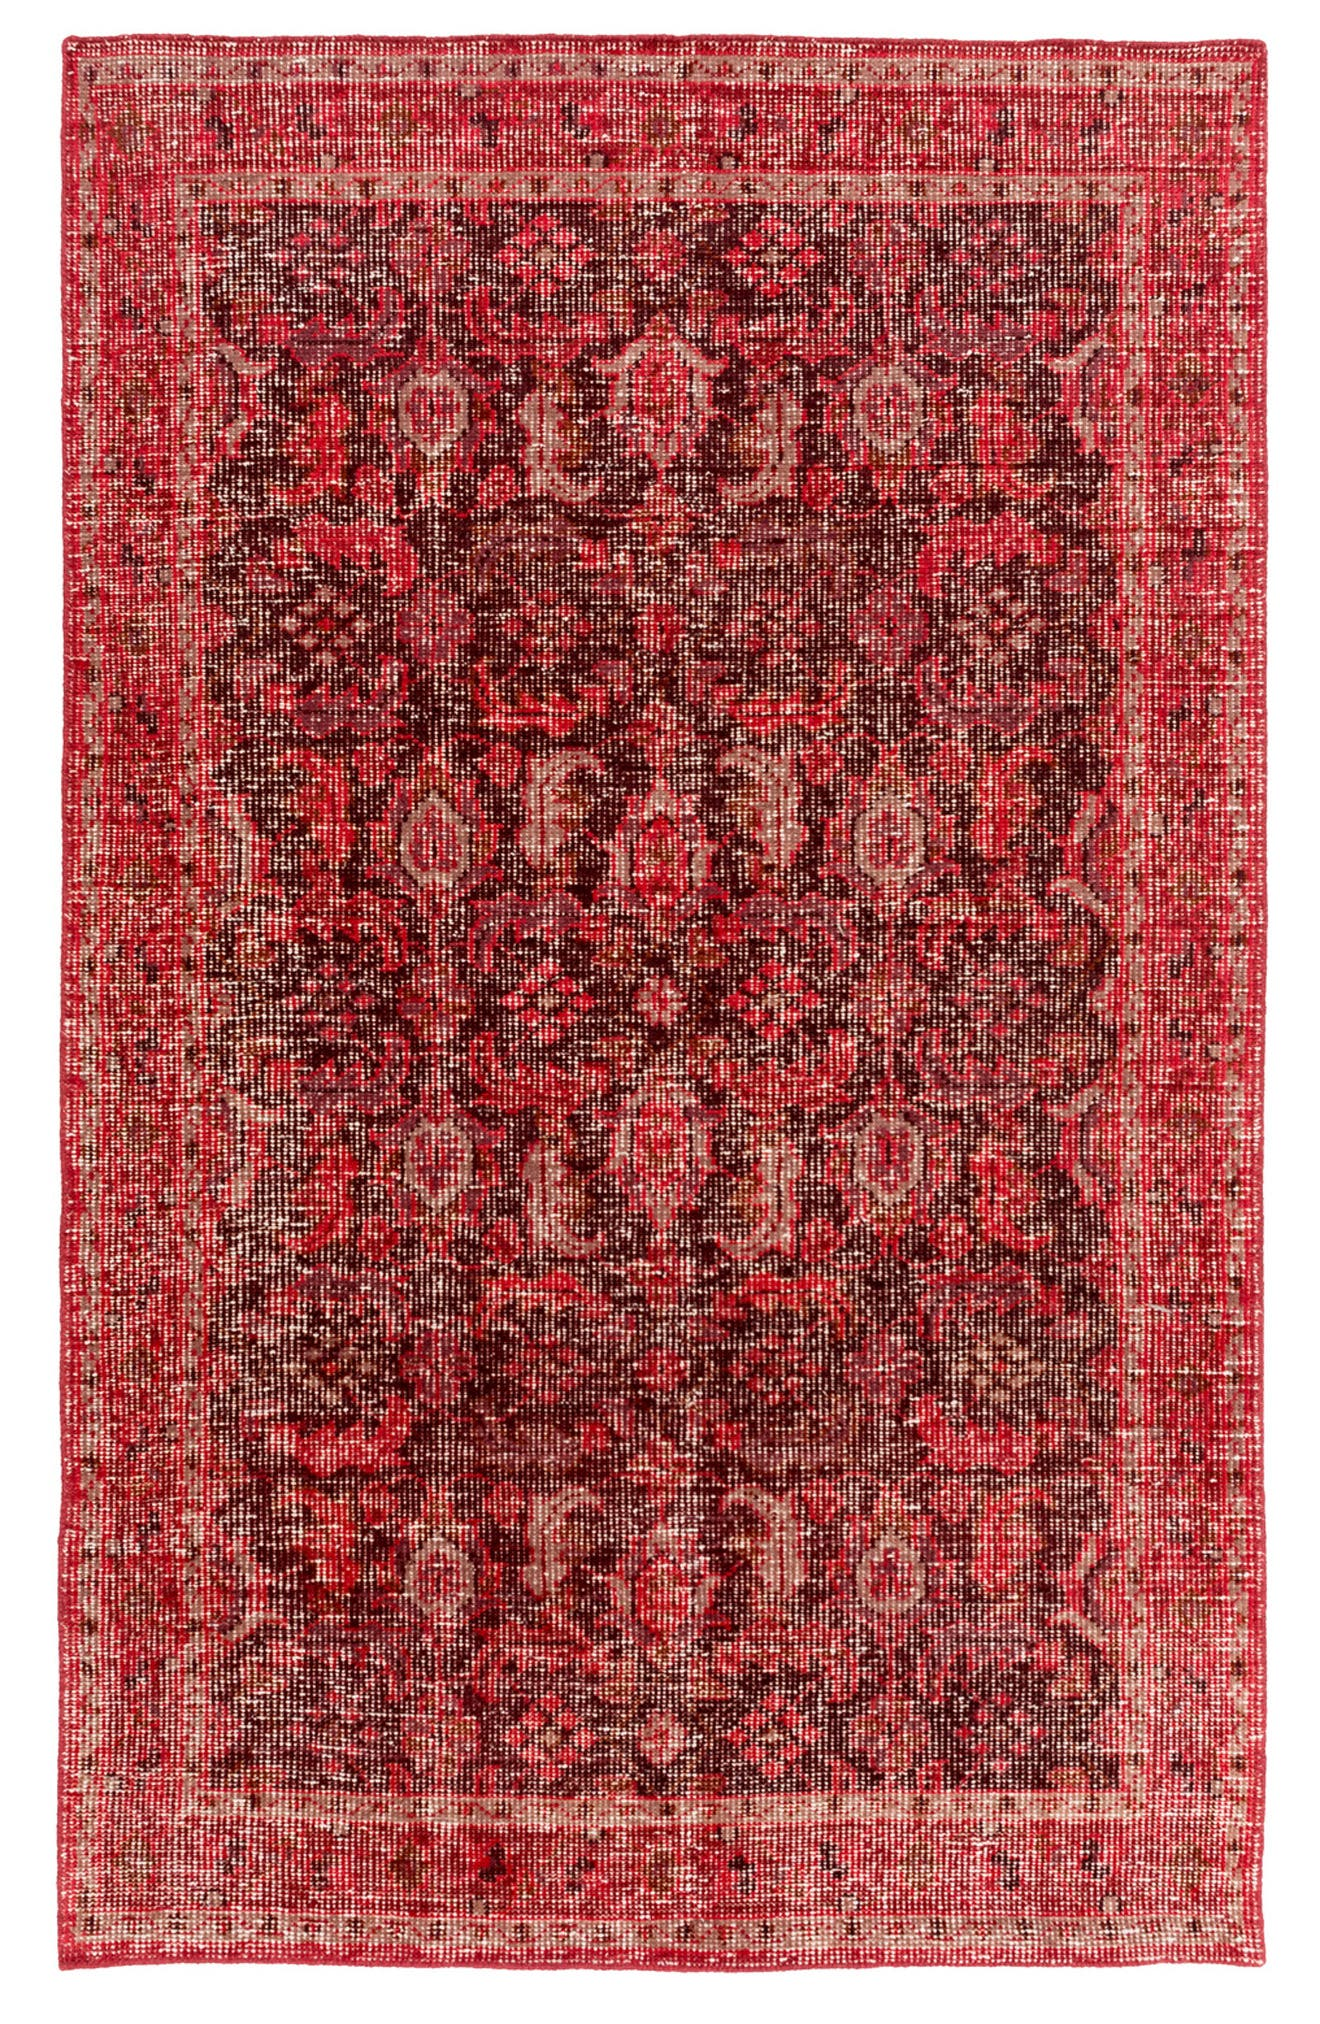 Surya Home Seaport Squares Rug